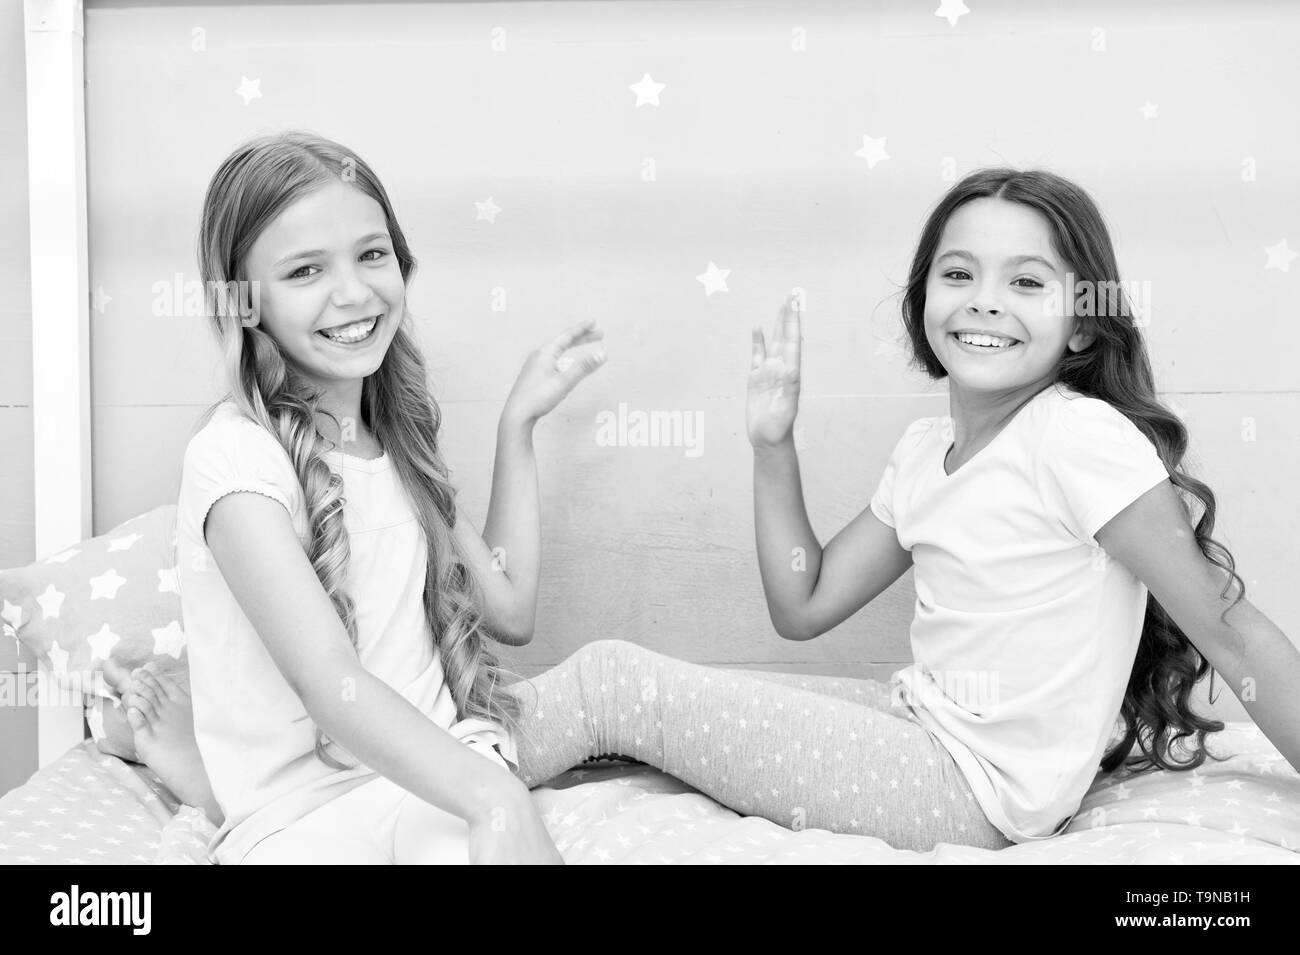 Sisters older or younger major factor in siblings having more positive emotions. Girls sisters spend pleasant time communicate in bedroom. Benefits ha - Stock Image